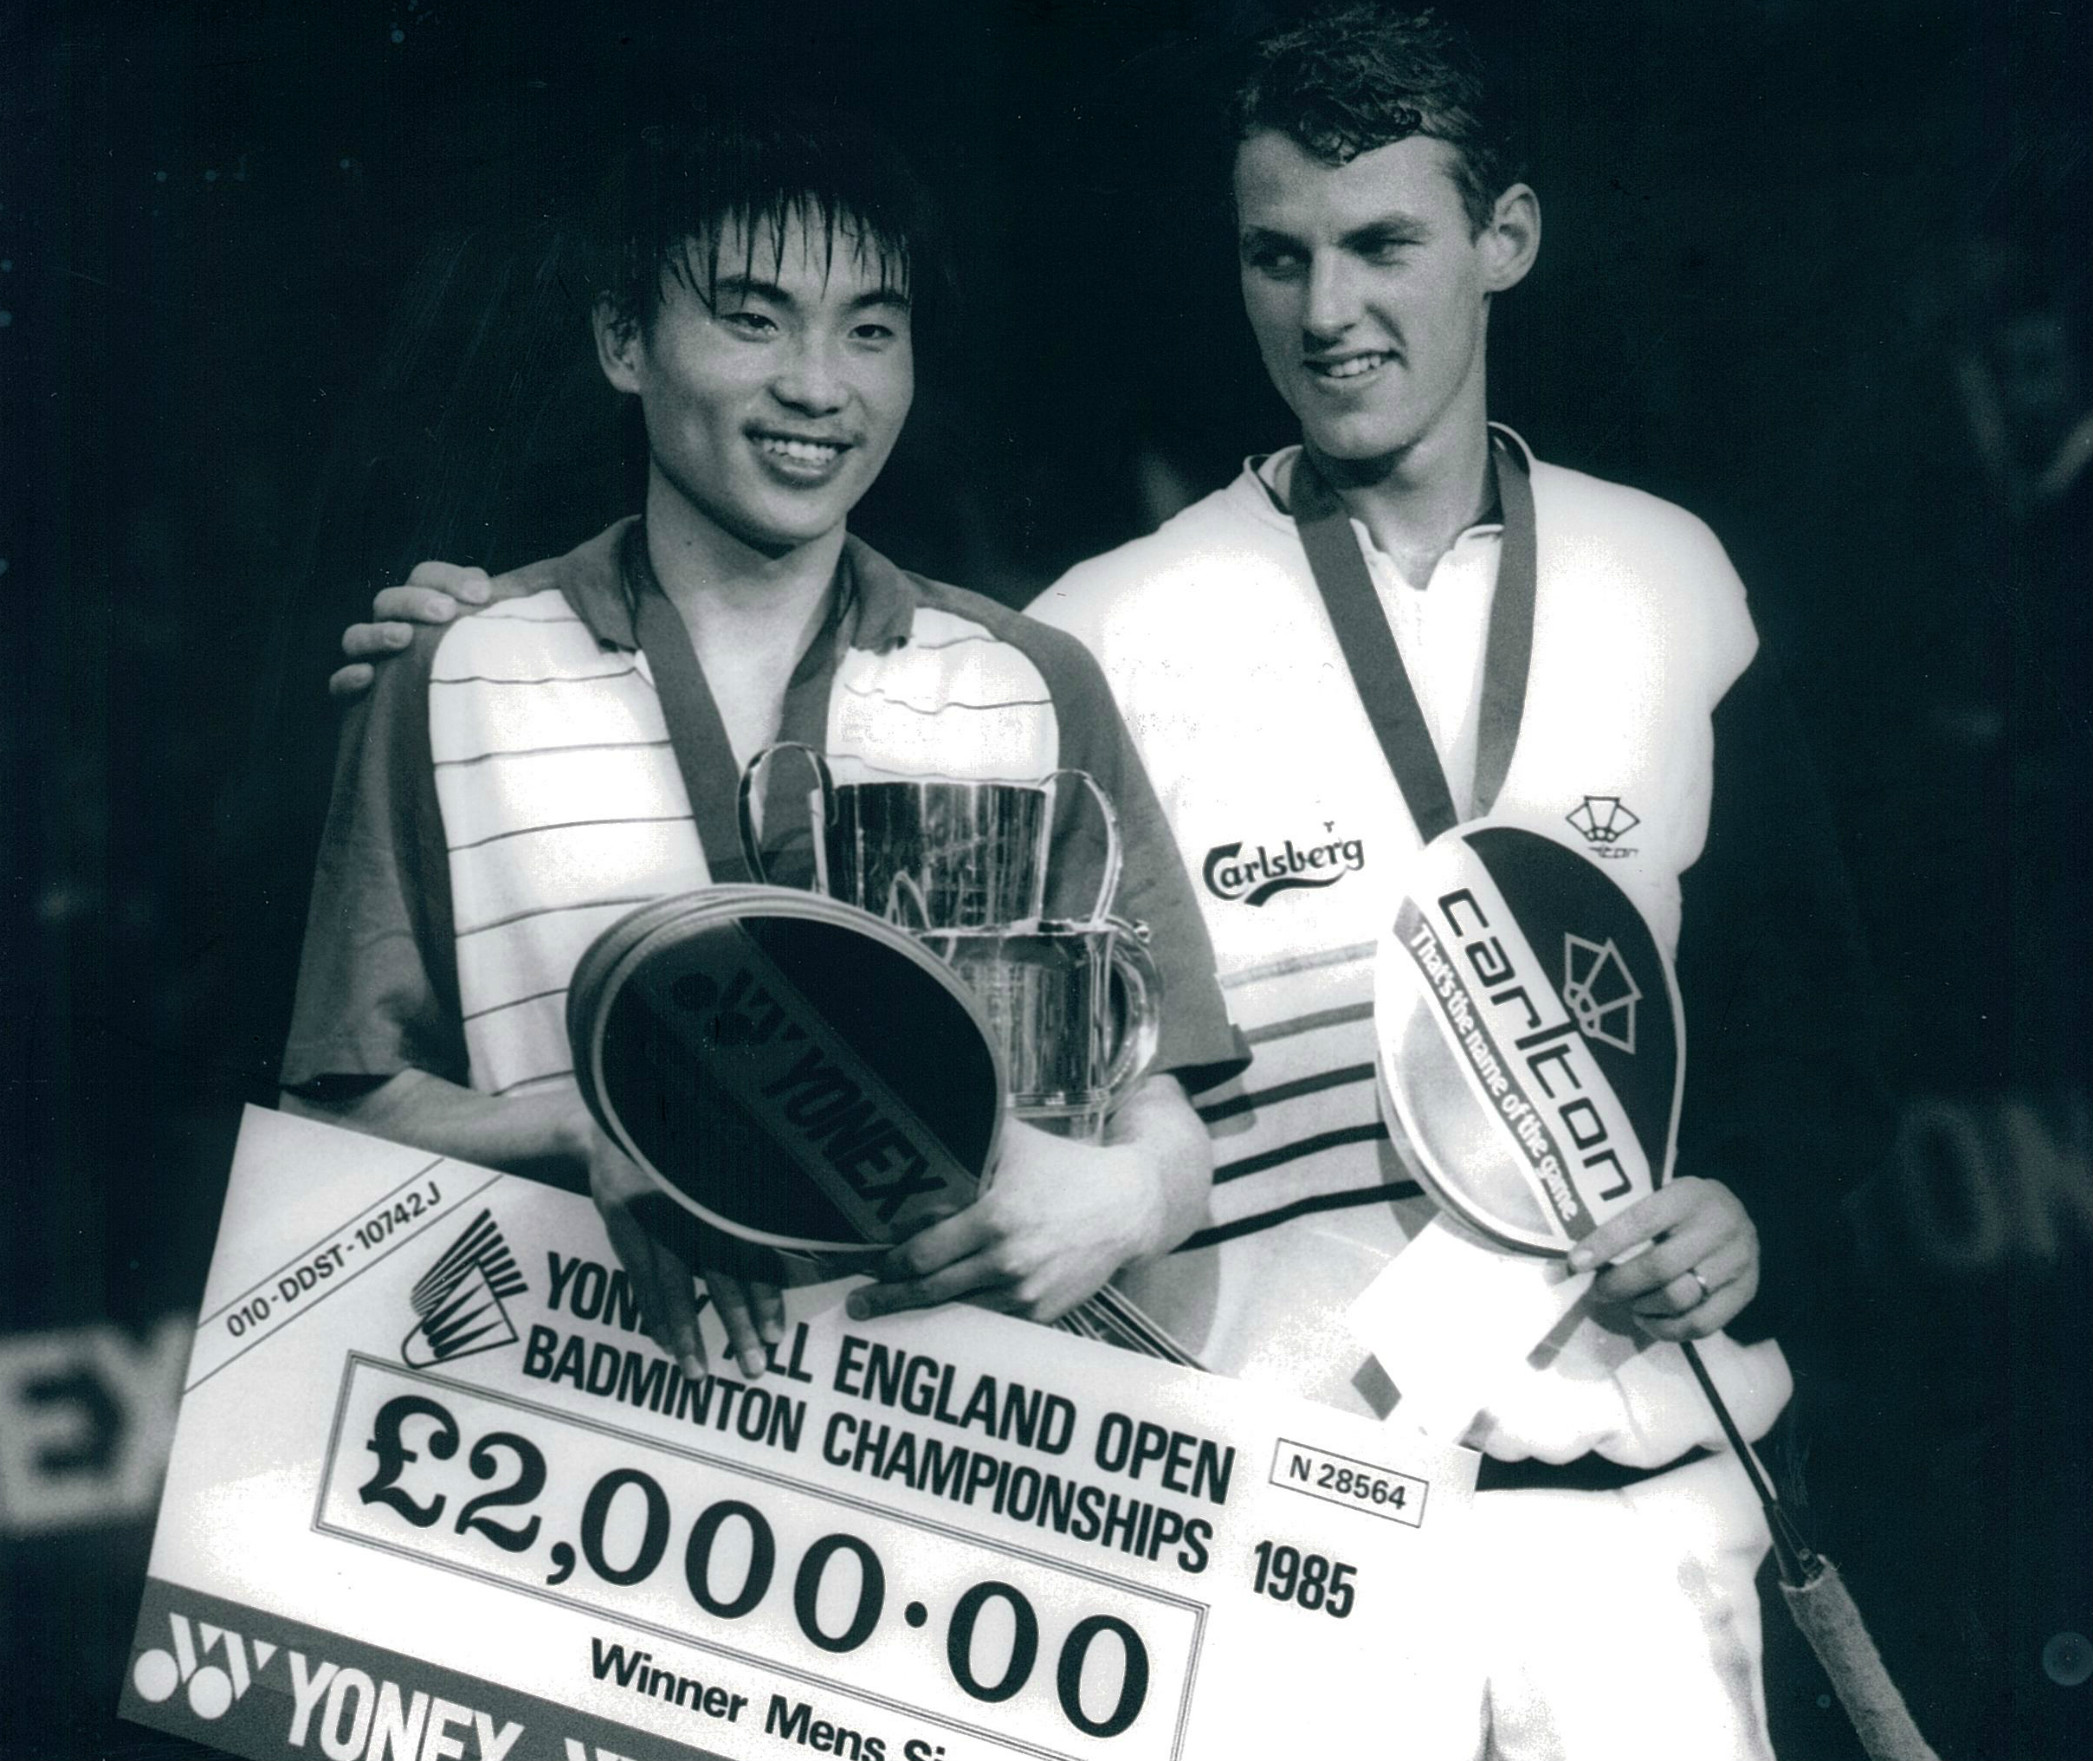 Morten frost acknowledges 1985 all england winner zhao jianhua - pic by preben soborg